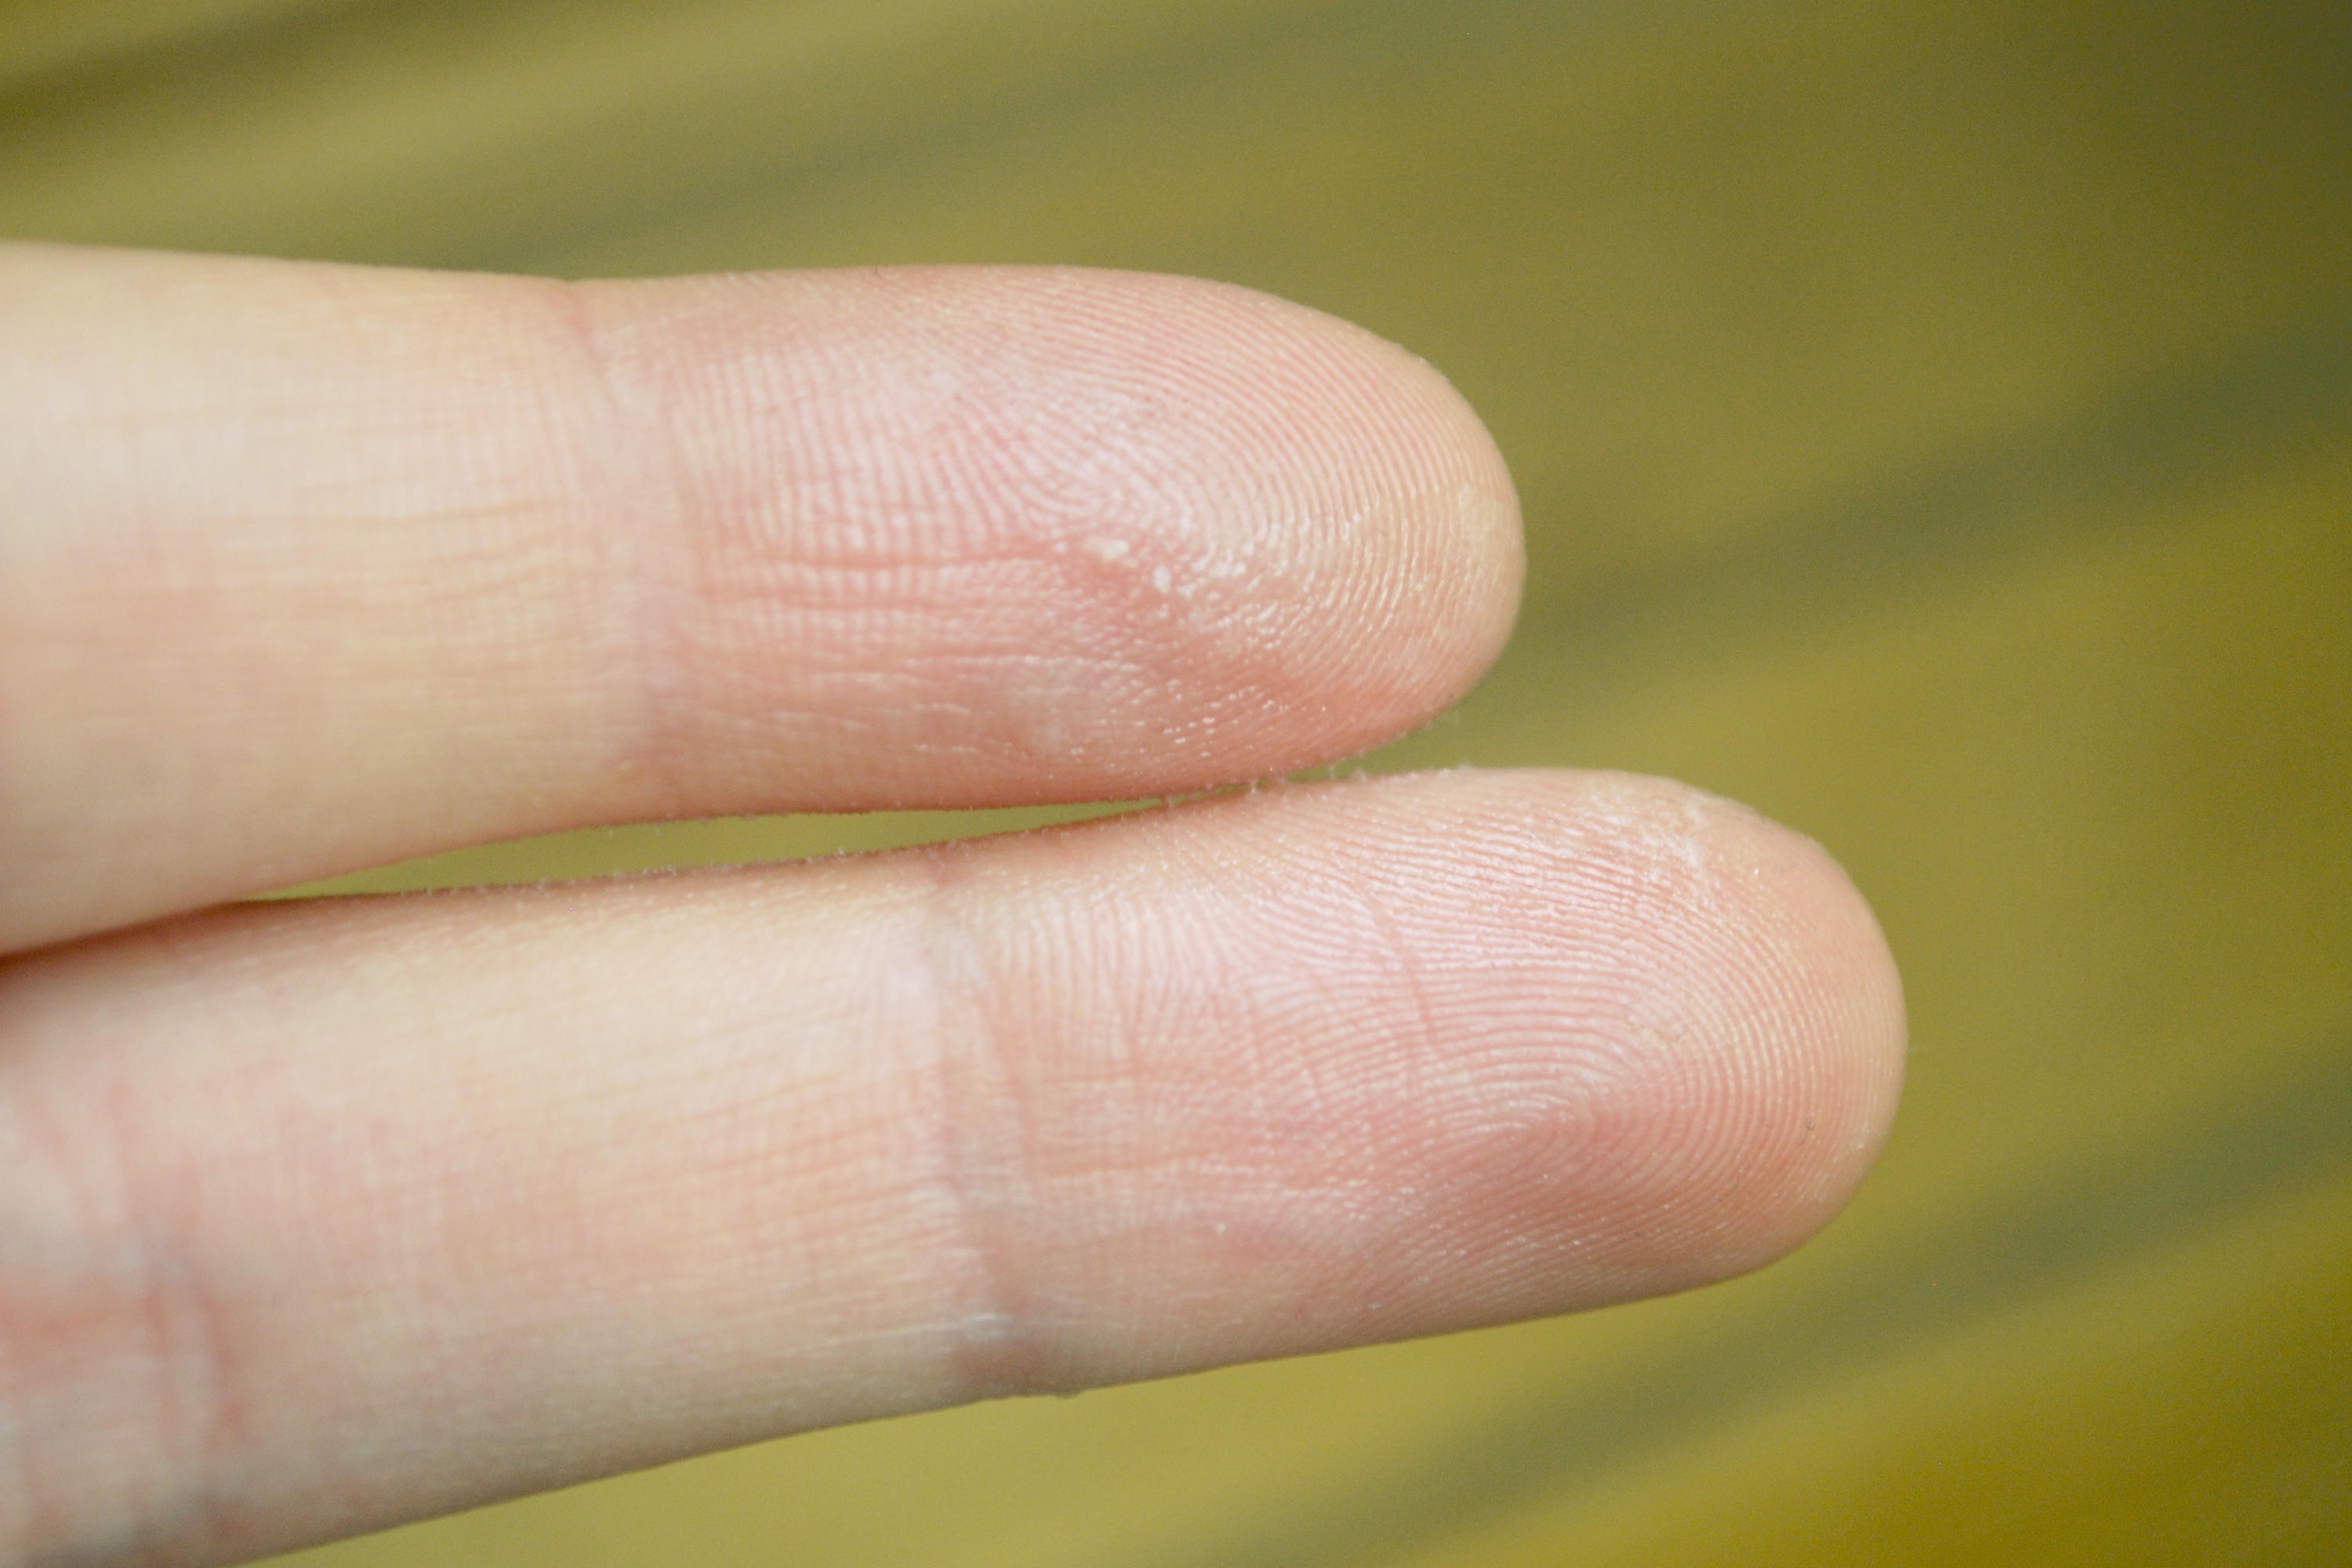 contact dermatitis from acrylic nails photo - 2